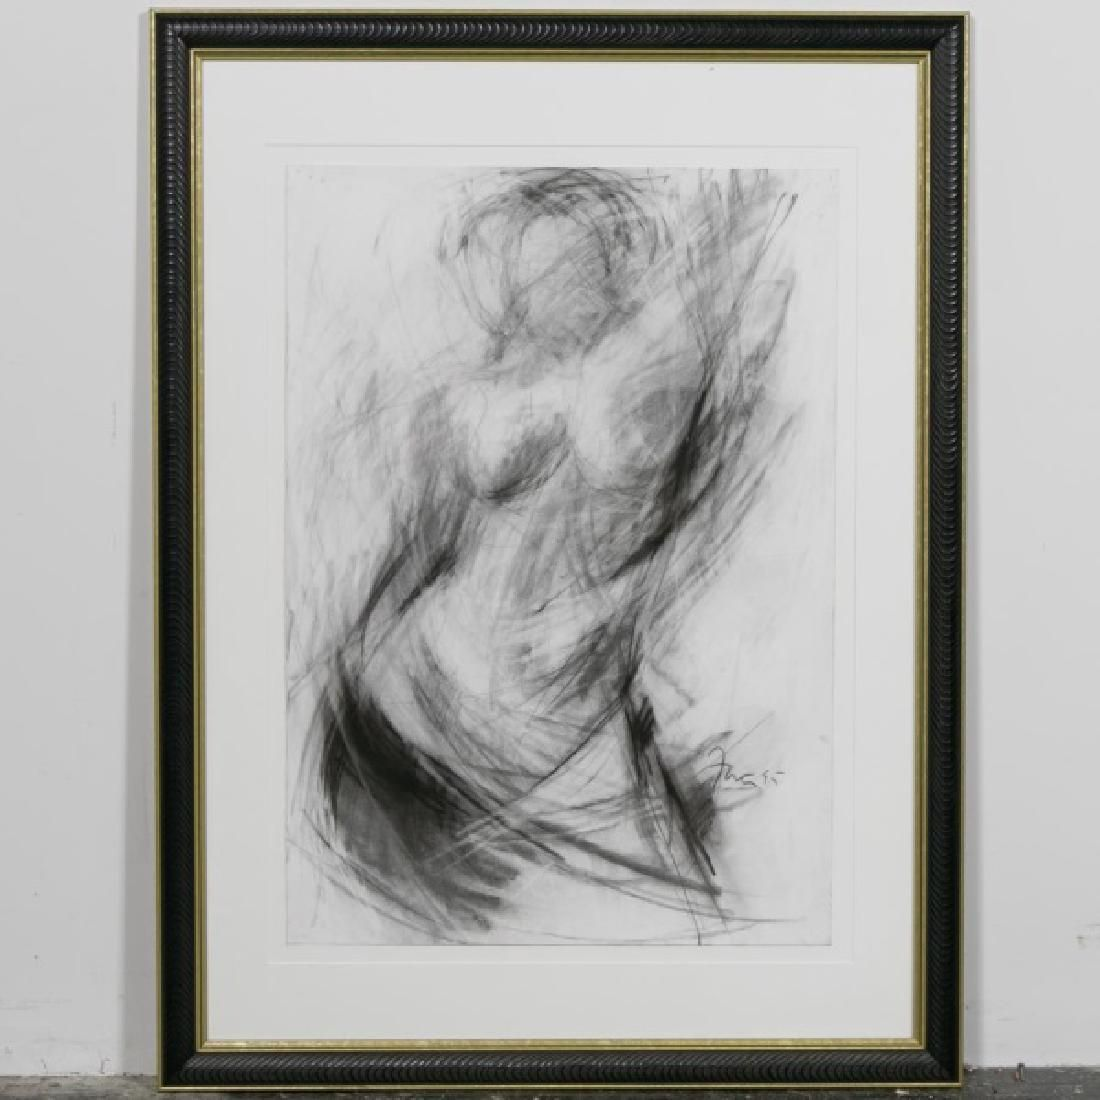 Gail Foster, Large Charcoal Abstract Nude